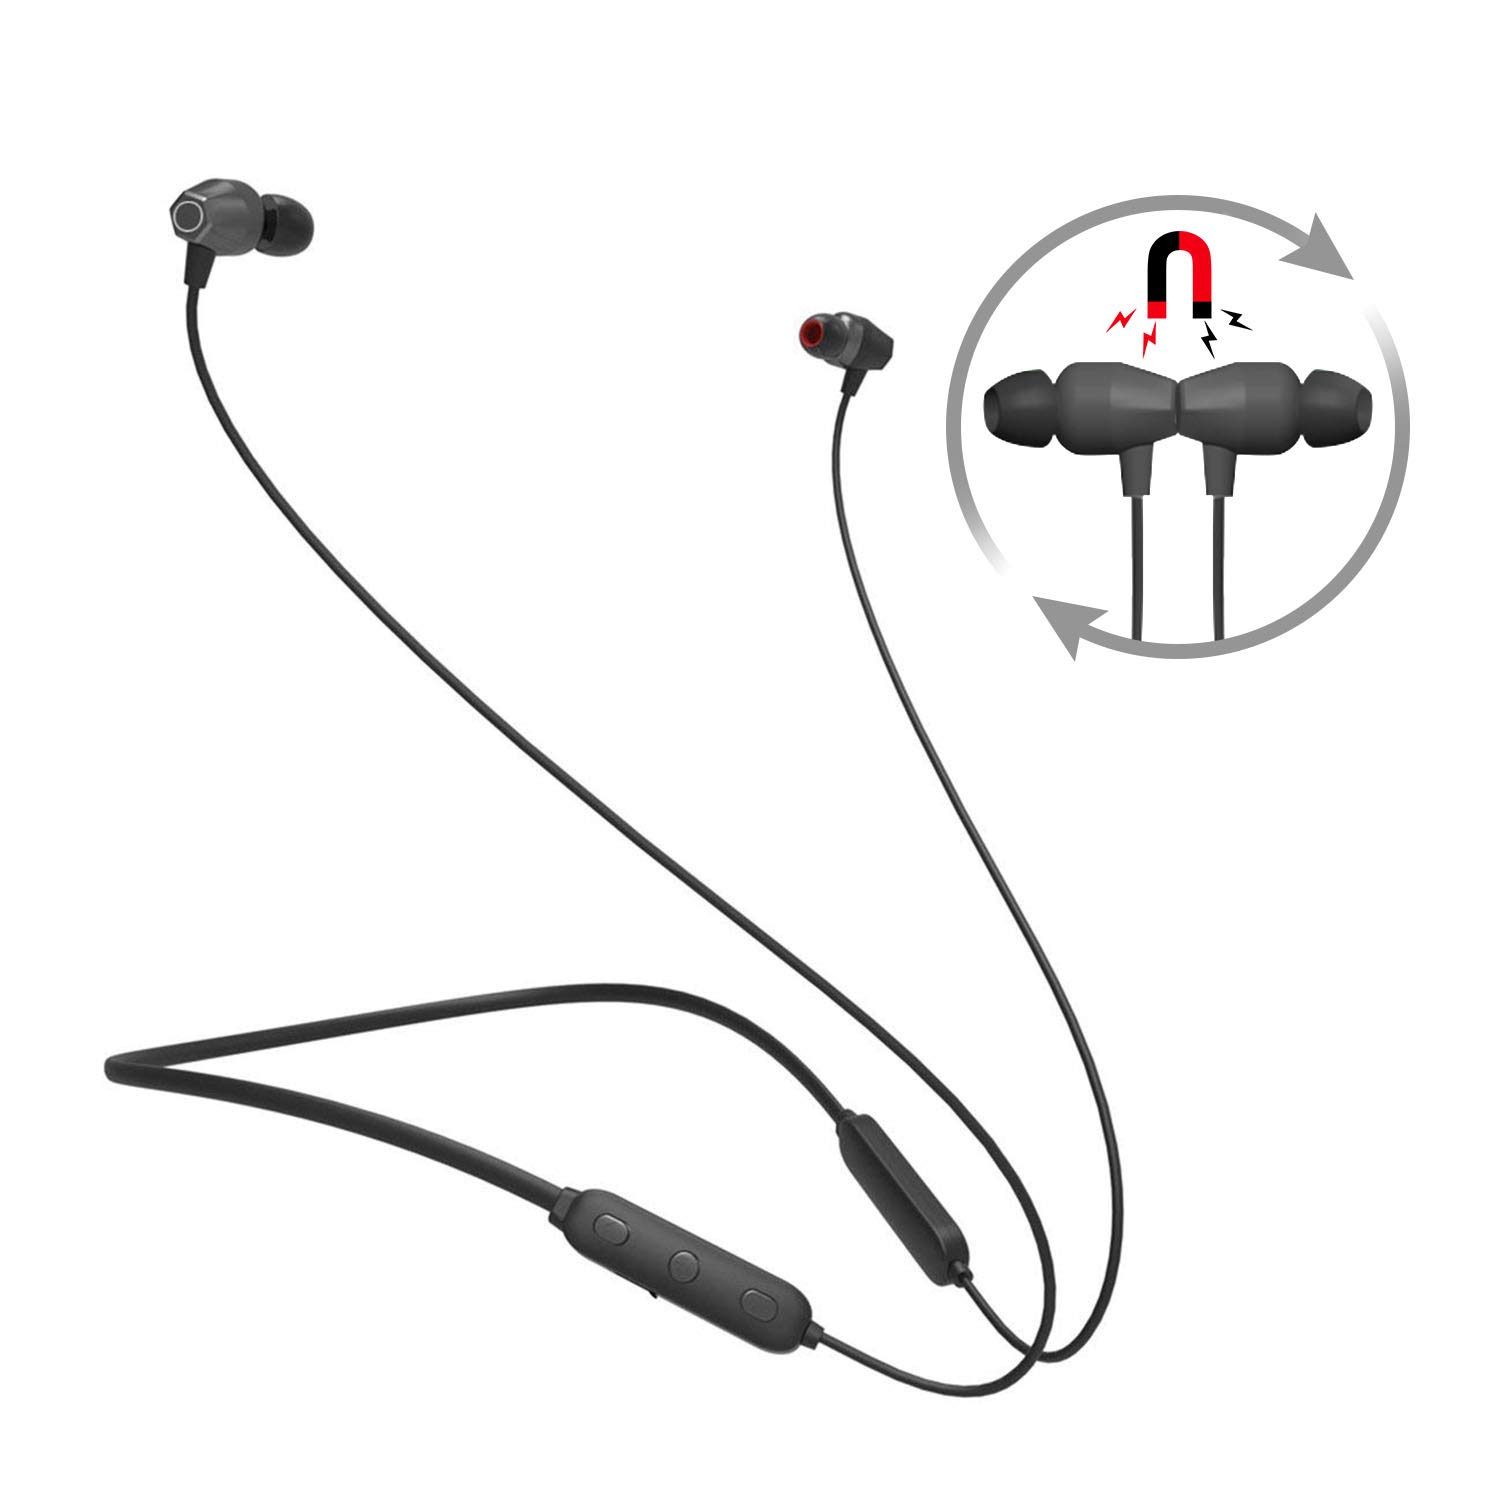 Bluetooth Headphones Neckband, Wireless 4.1 Magnetic Earbuds Sports Sweatproof in-Ear Earphones Noise Cancelling Headset with mic for iPhone X 8 7 Plus Samsung Galaxy S7 S8 and Android Phones